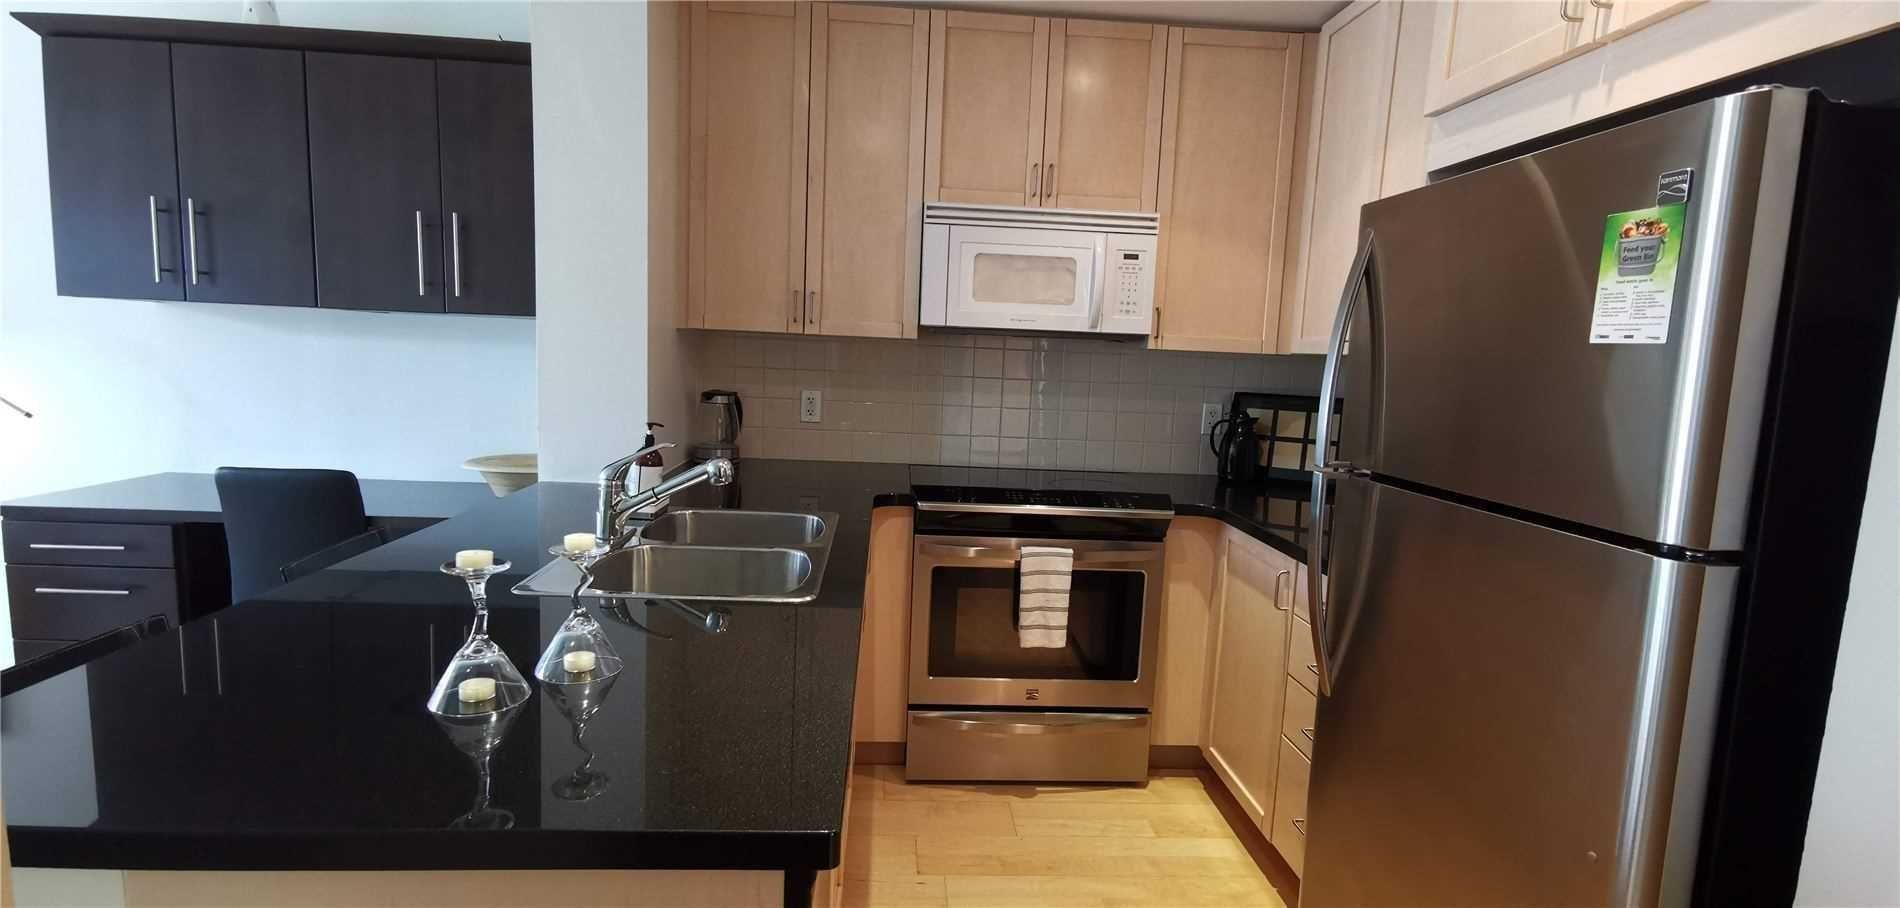 85 Bloor St E, unit 1212 for rent in Toronto - image #2